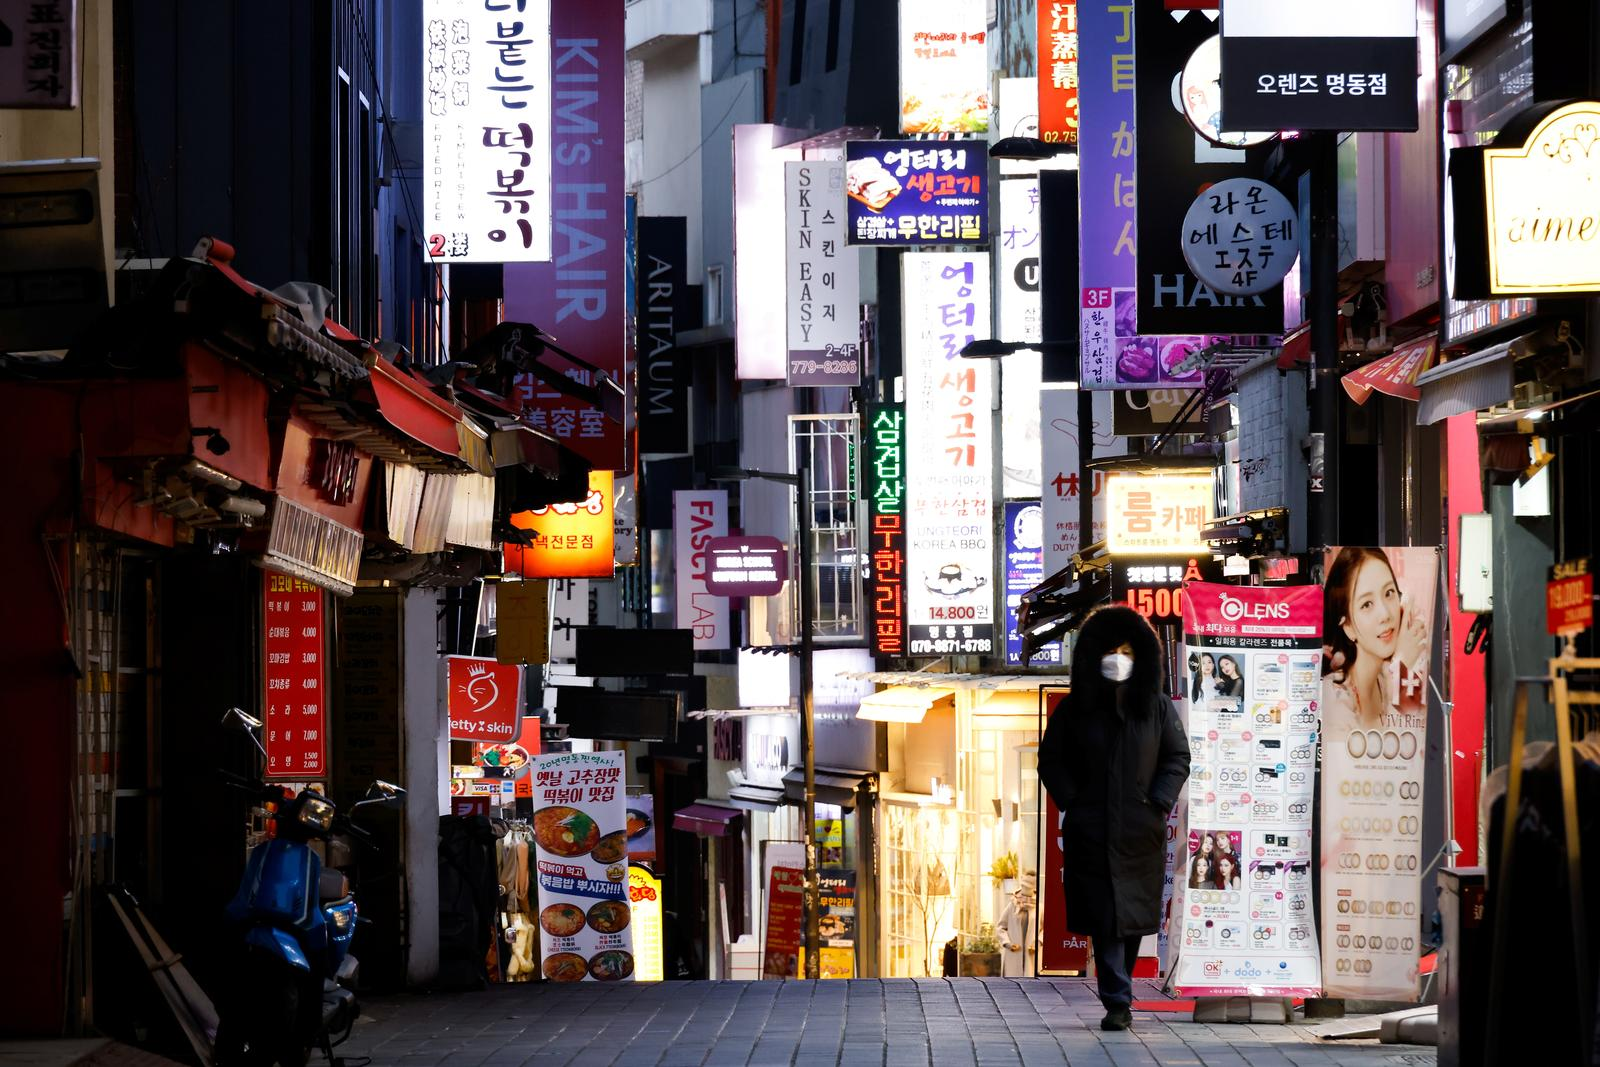 South Korea's new coronavirus infections at second highest in new wave